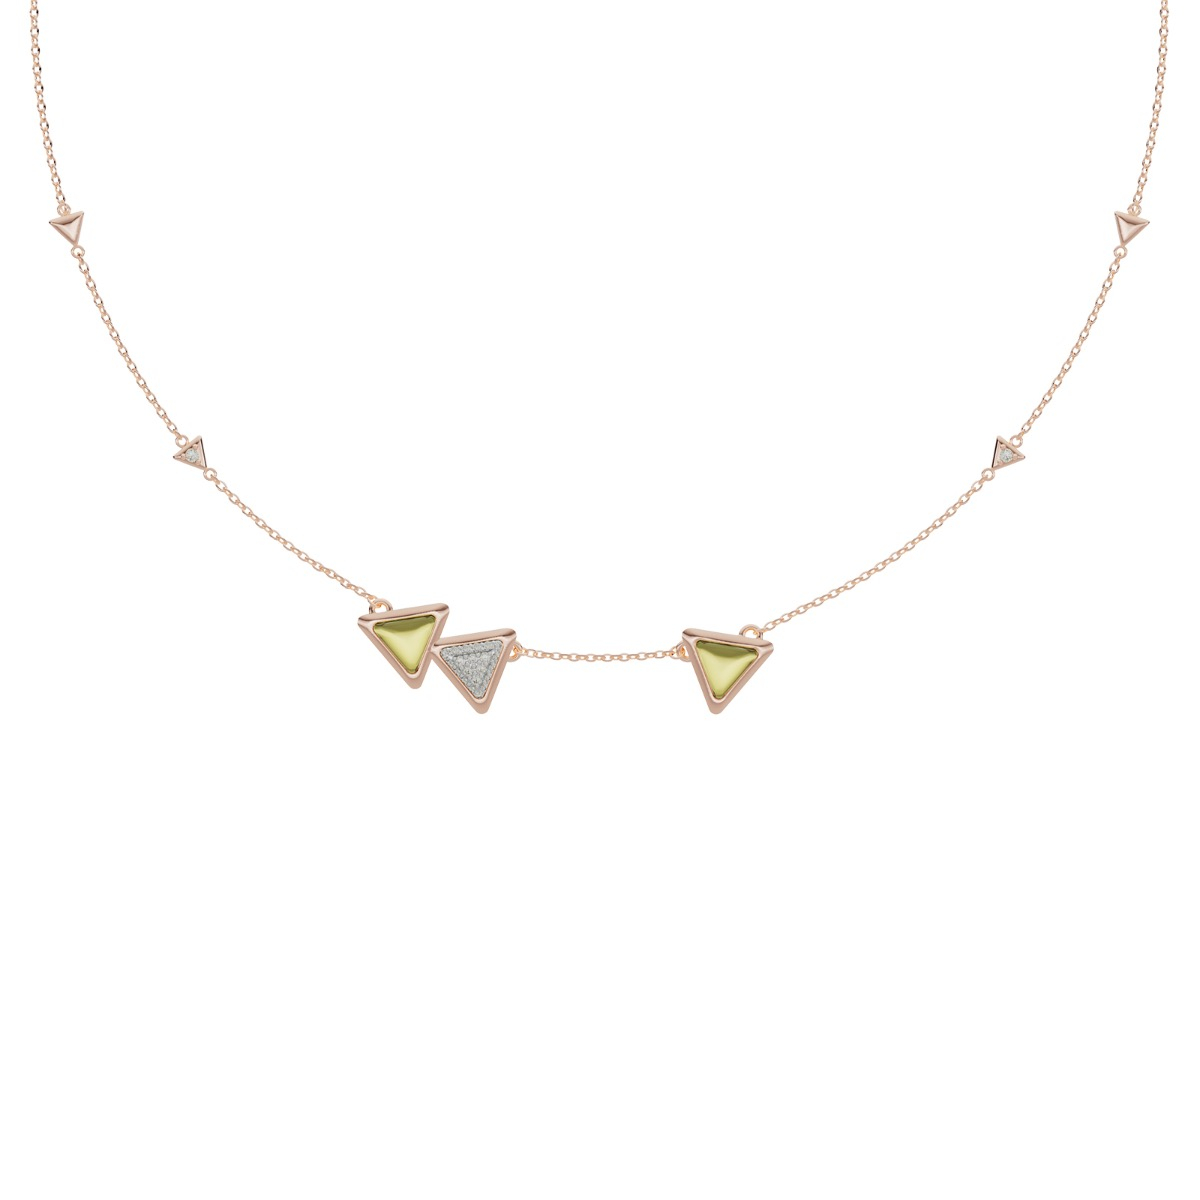 Necklace Dove Vai Forward Exquisite Rose Gold  Green Tourmaline and Diamonds